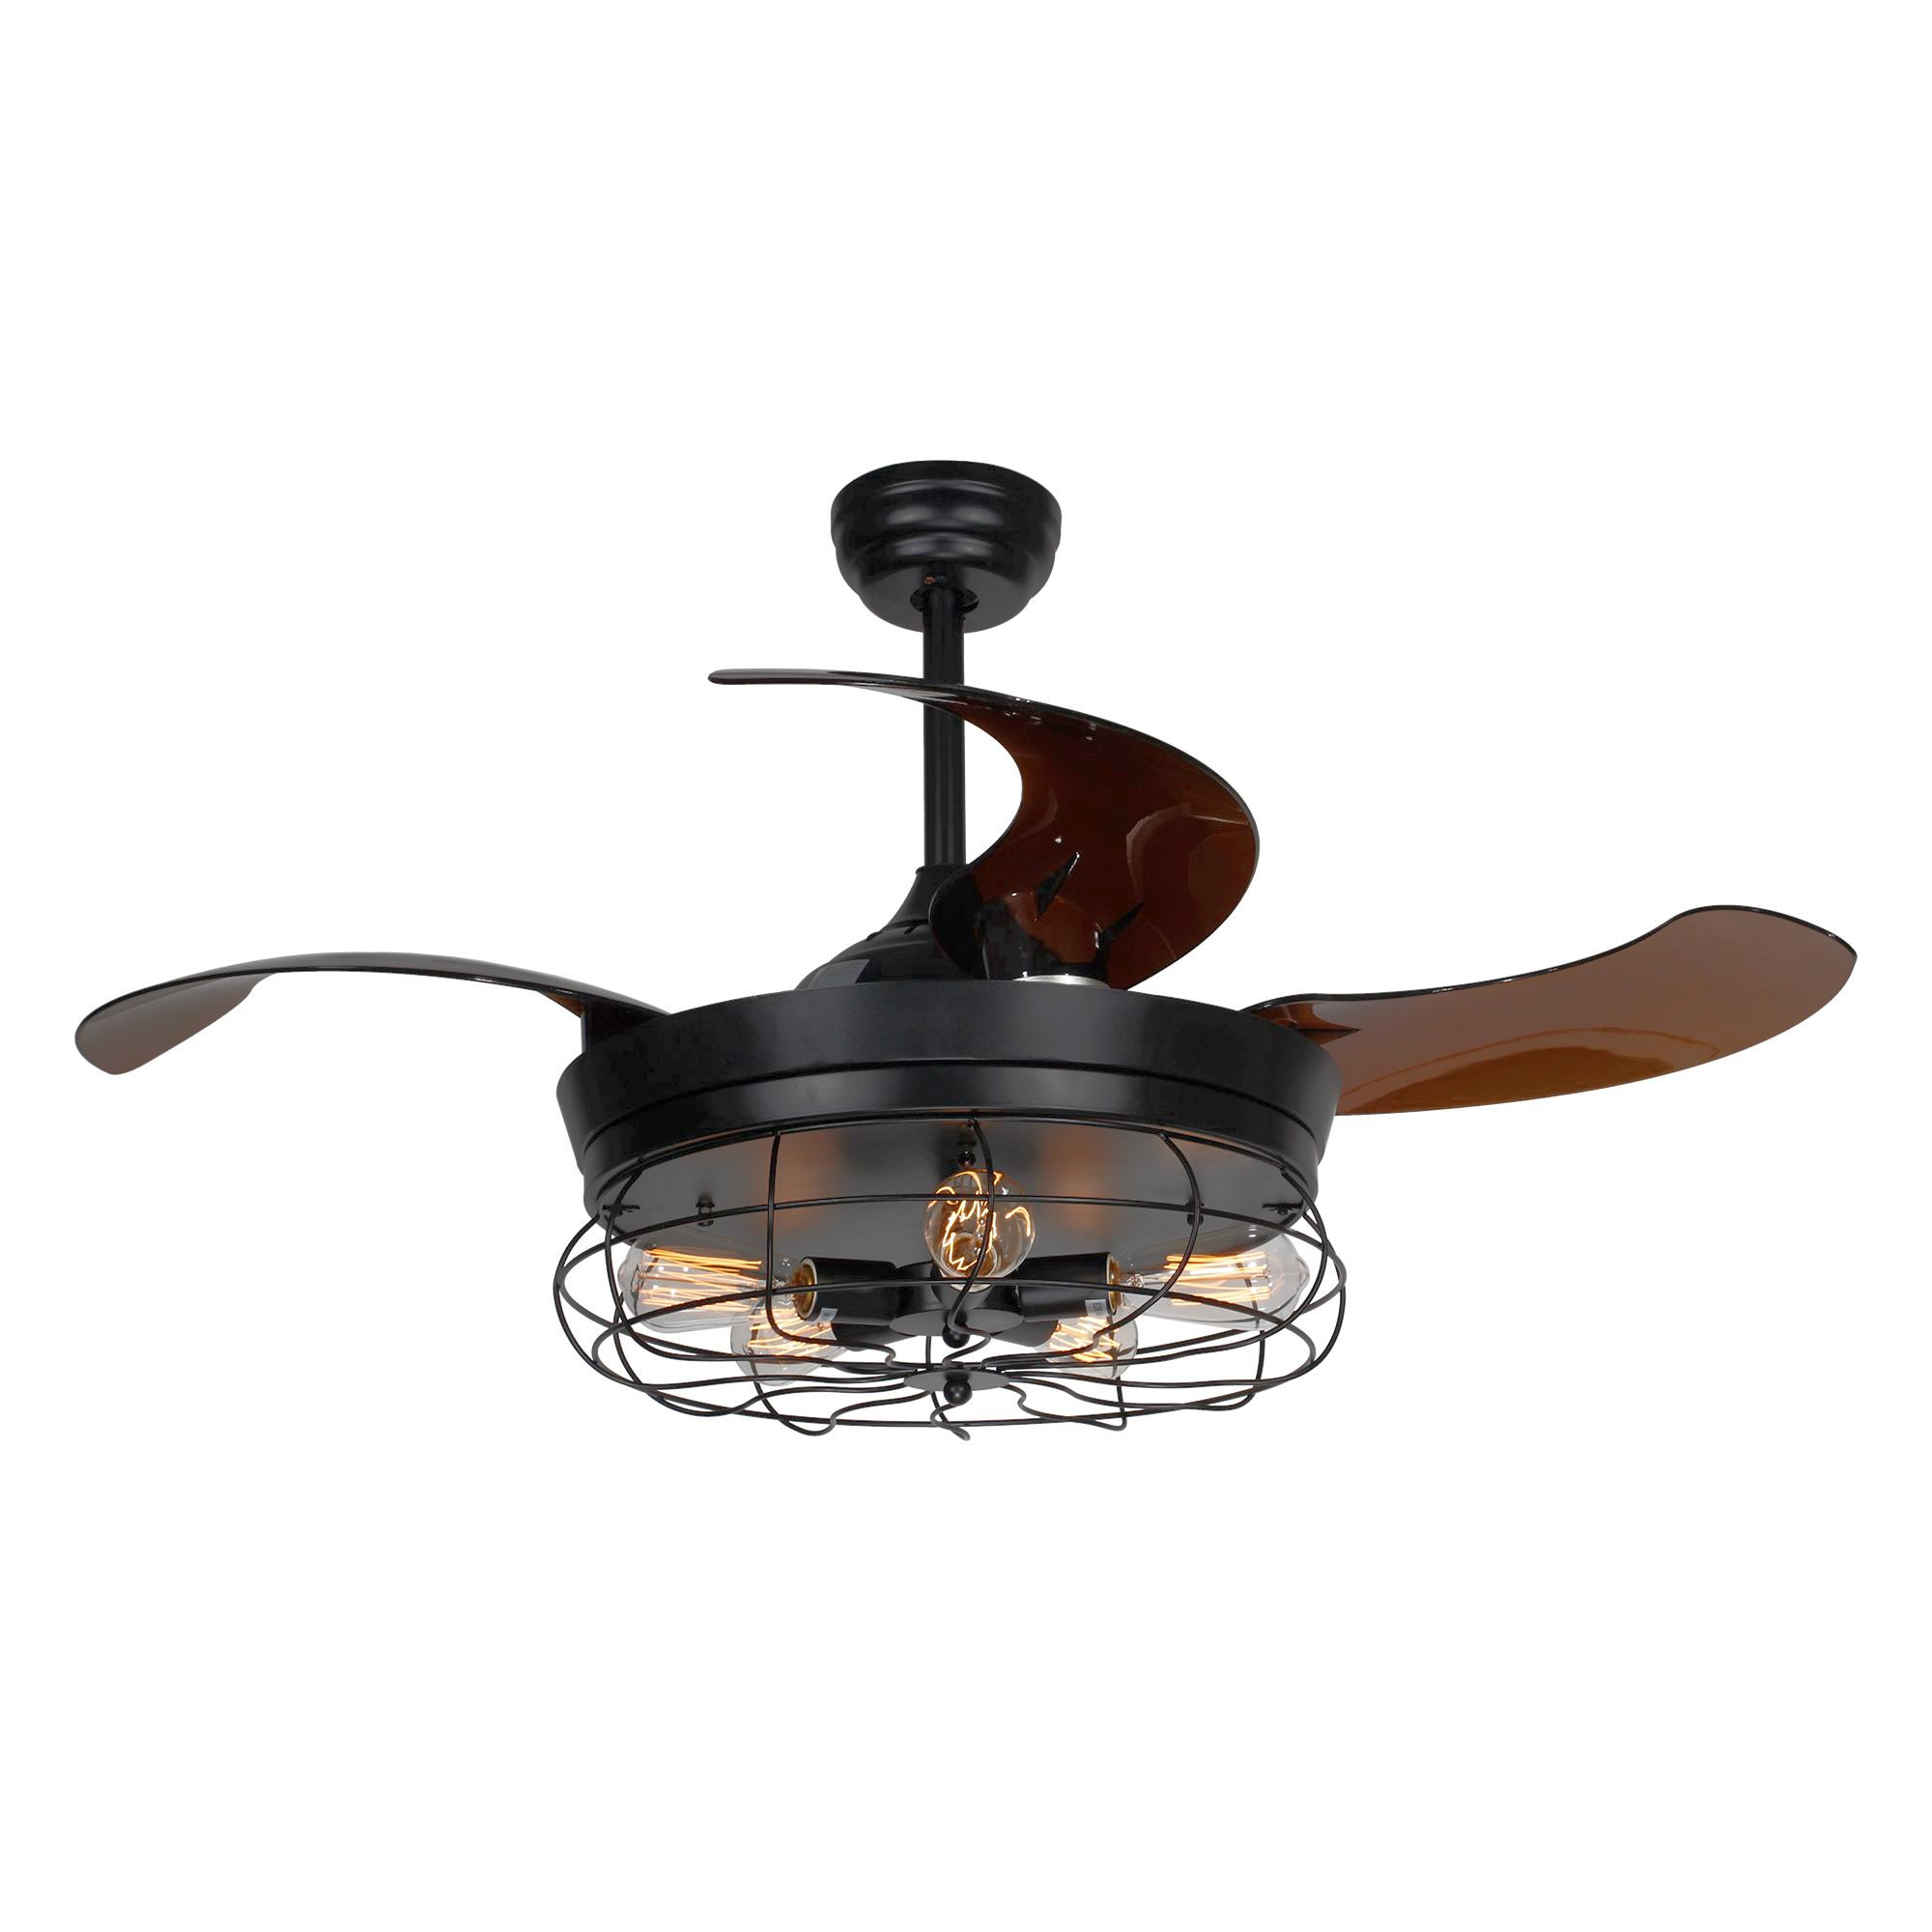 Parrot Uncle Ceiling Fan with Light 46 Inch Industrial Ceiling Fan Retractable Blades Vintage Cage Chandelier Fan with Remote Control, 5 Edison Bulbs Needed, Not Included, Black